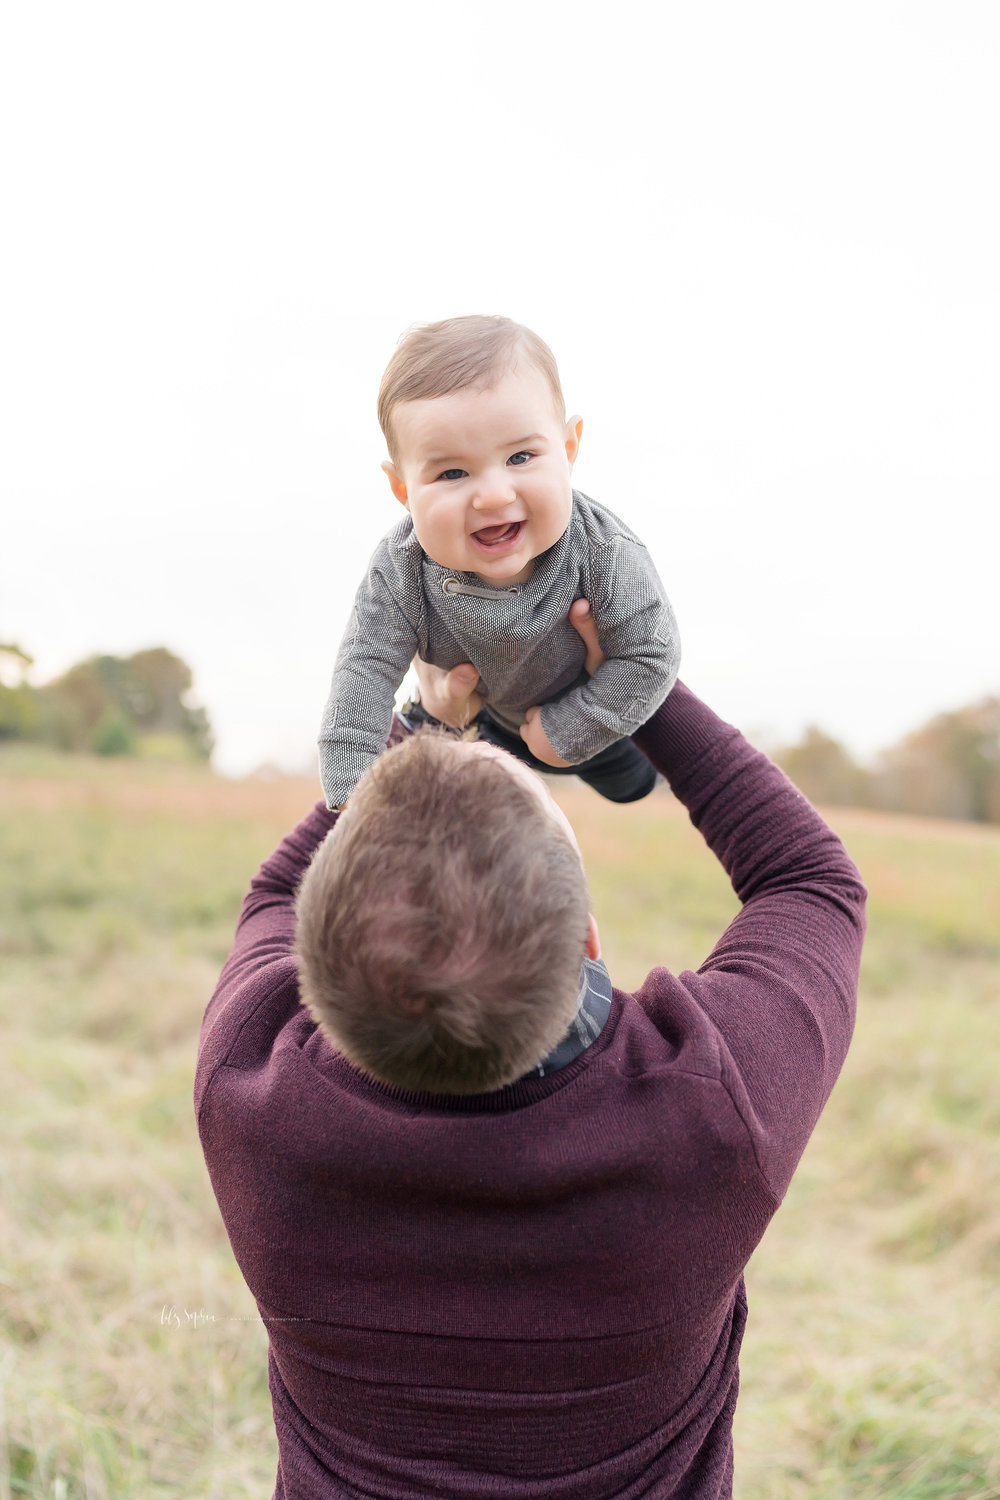 atlanta-midtown-west-end-decatur-lily-sophia-photography-family-photographer-eight-month-baby-boy-sunset-outdoor-field-family-photos_0350.jpg